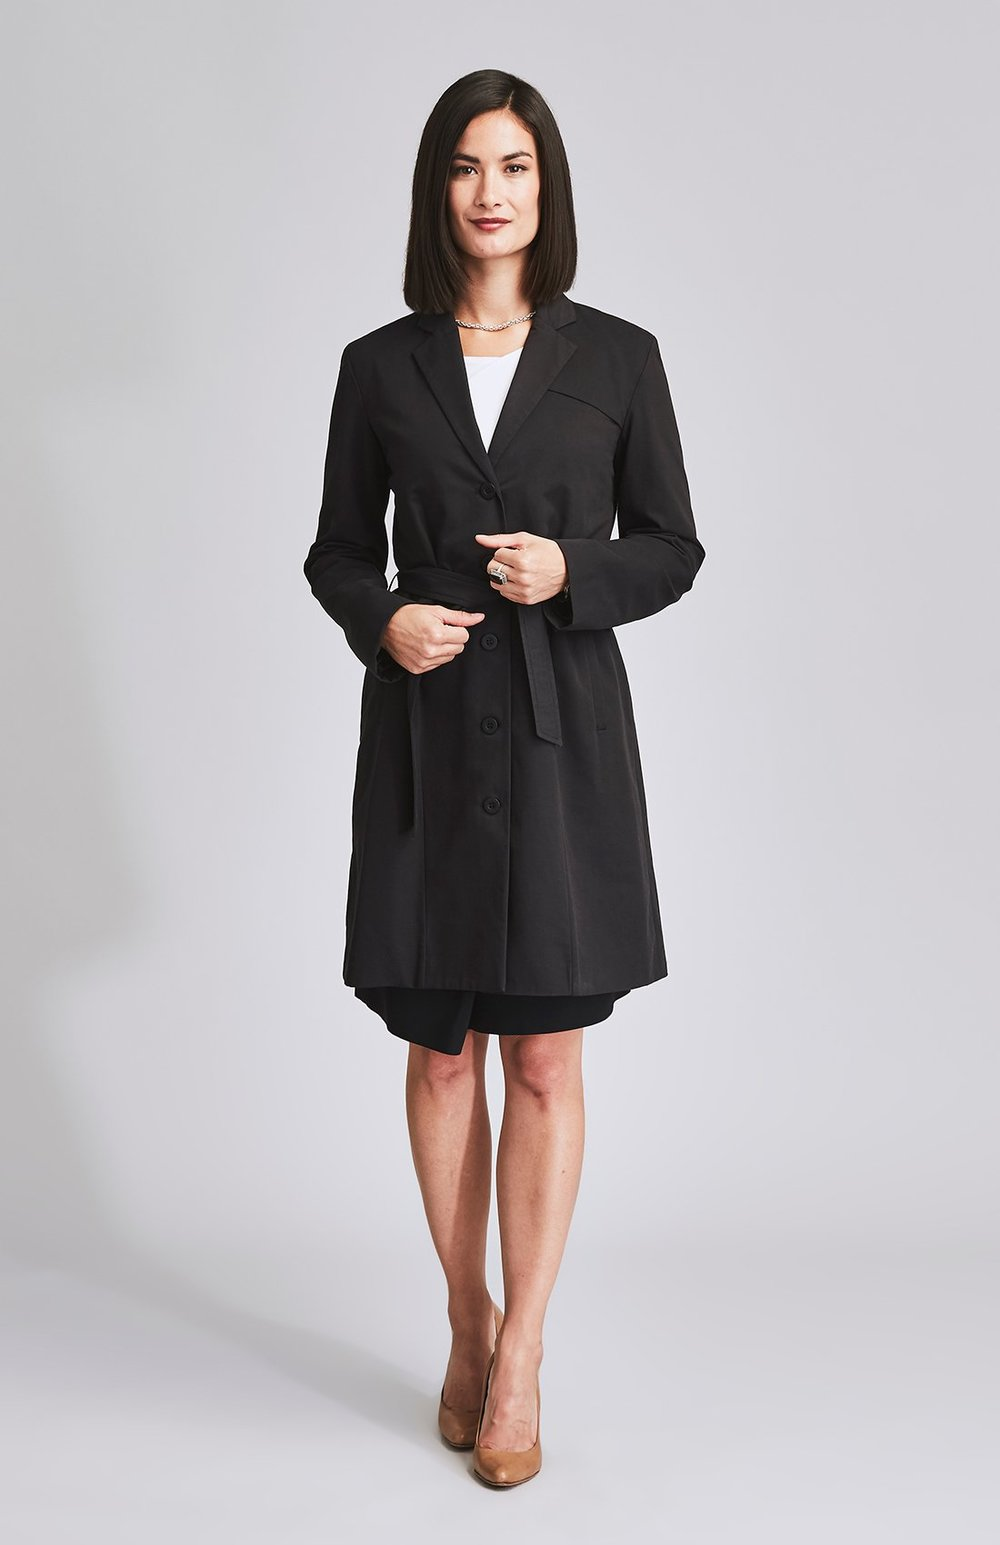 Women_s_black_trenchcoat_for_work_b2474b3f-6817-484b-b142-820e3d124ea2.jpg